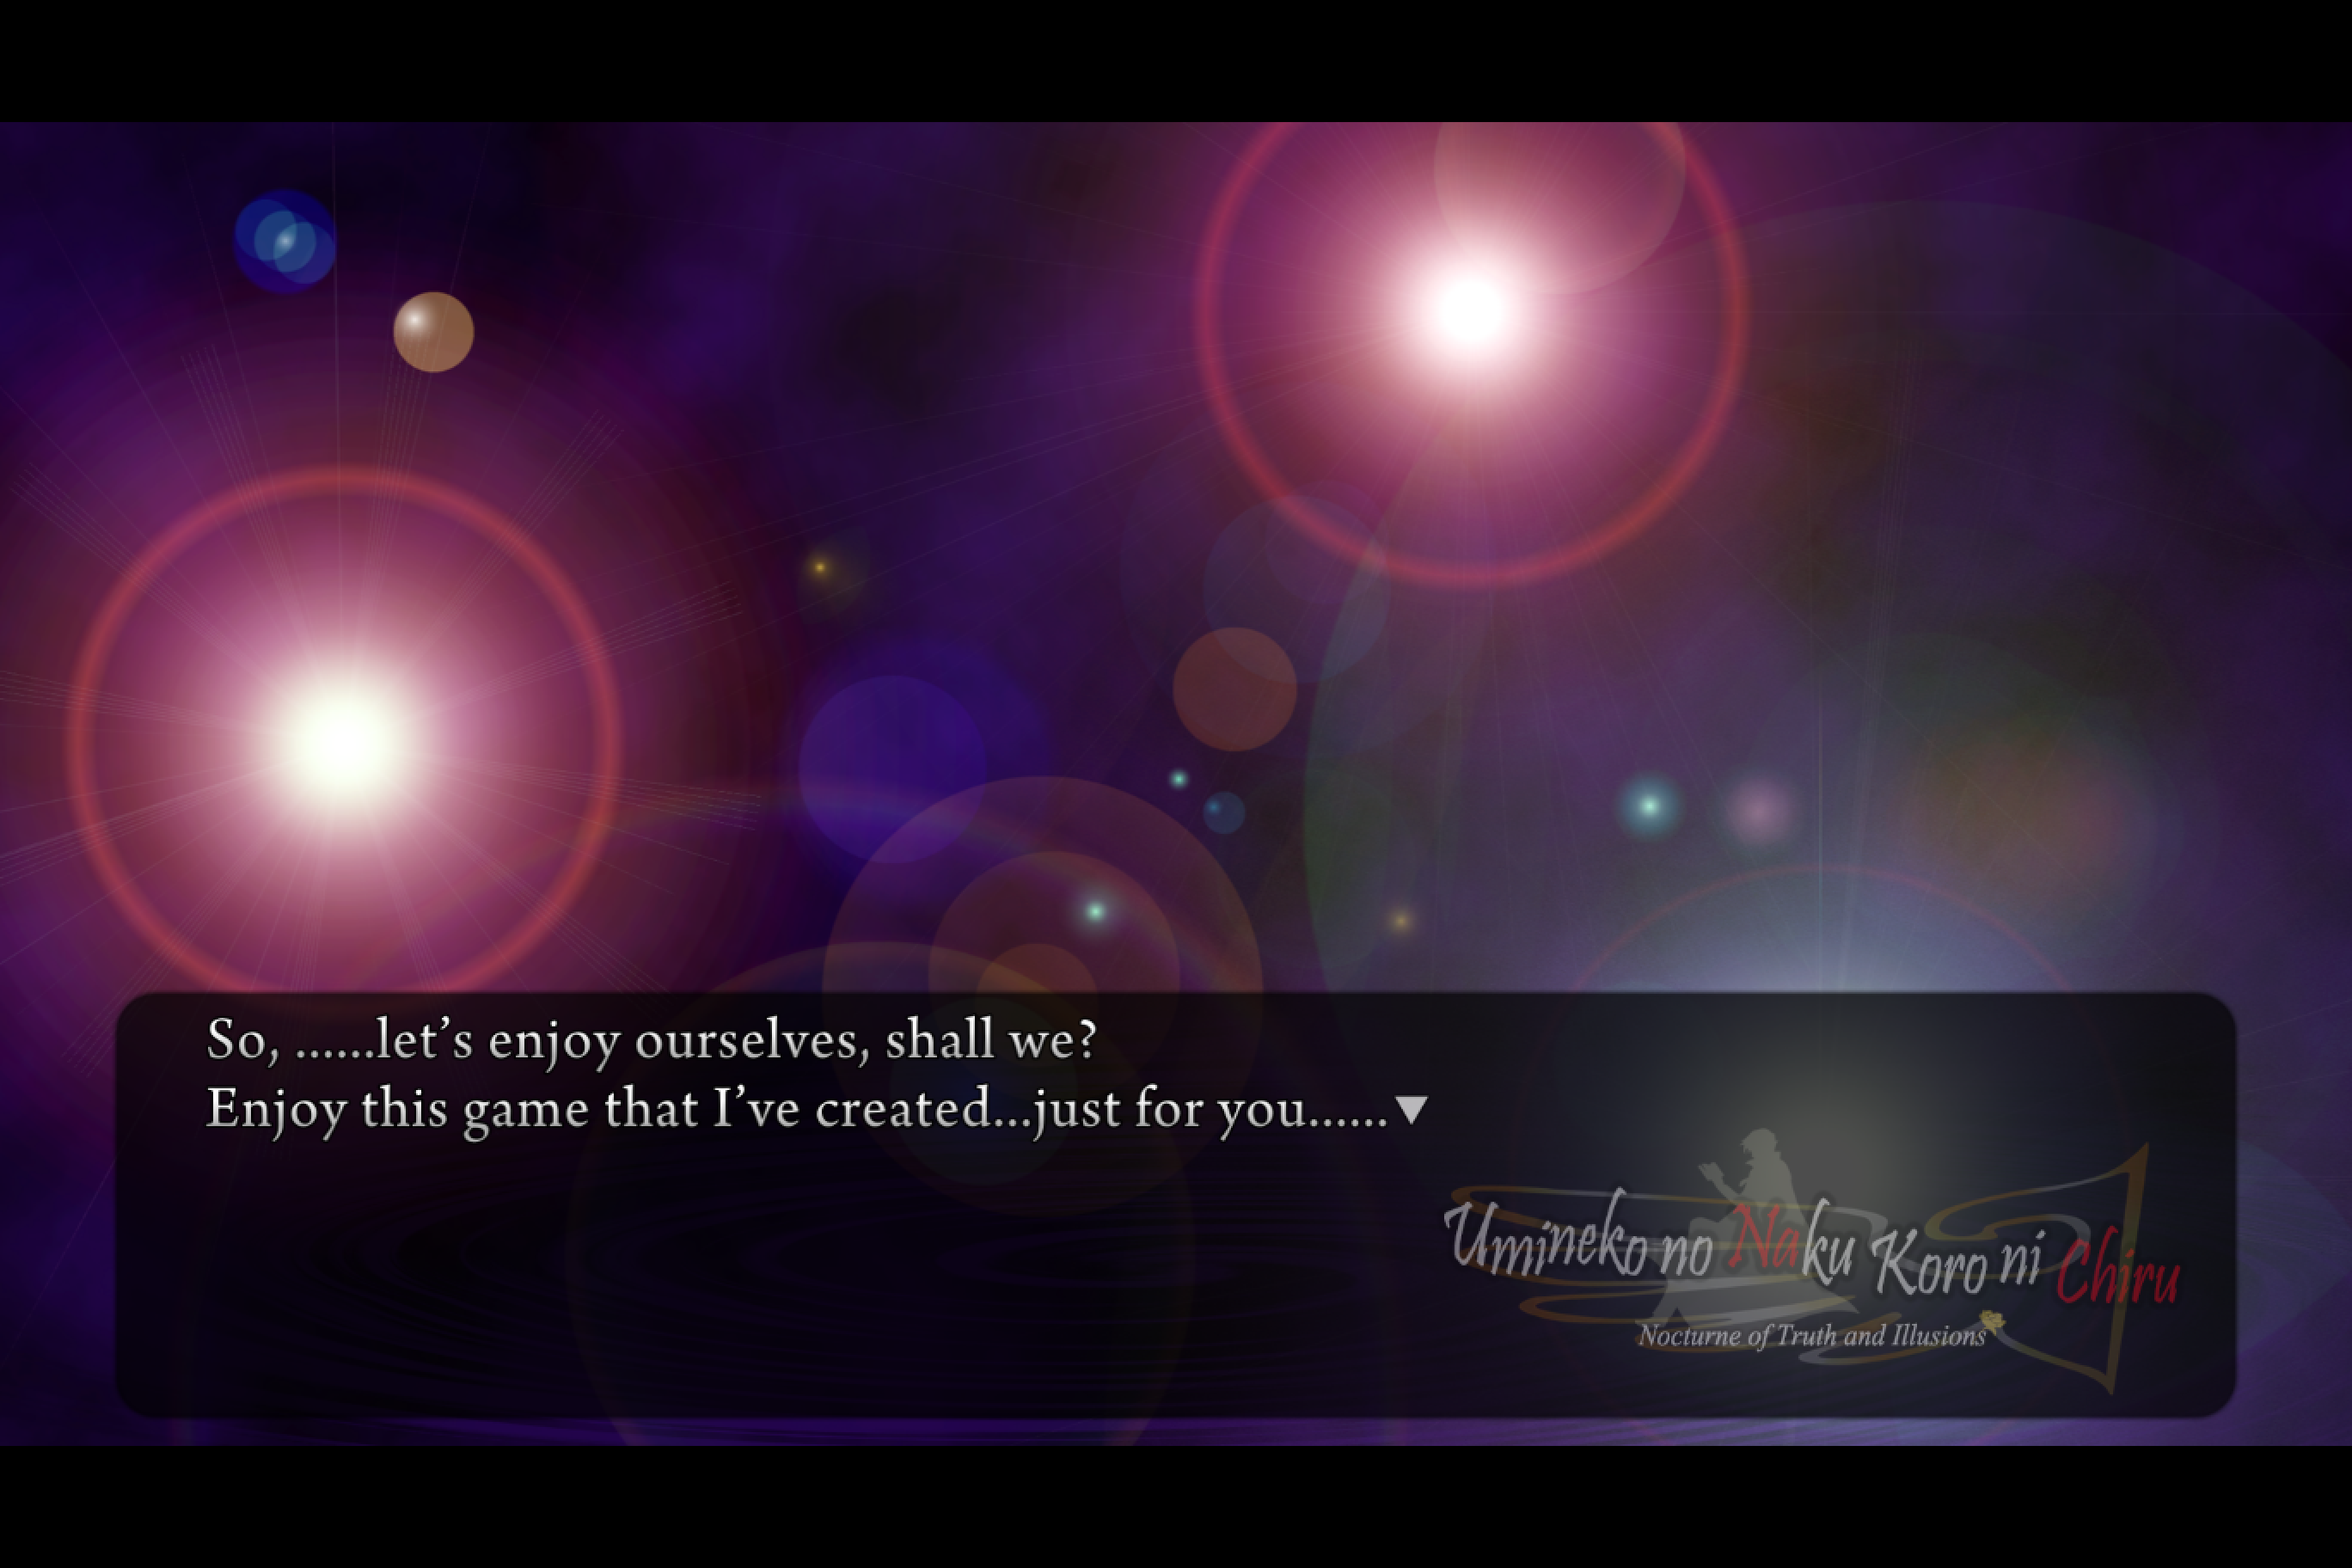 Umineko no Naku Koro ni Chiru ~Nocturne of Truth and Illusions~ (8.2a) 6_1_2020 11_46_33 PM.png